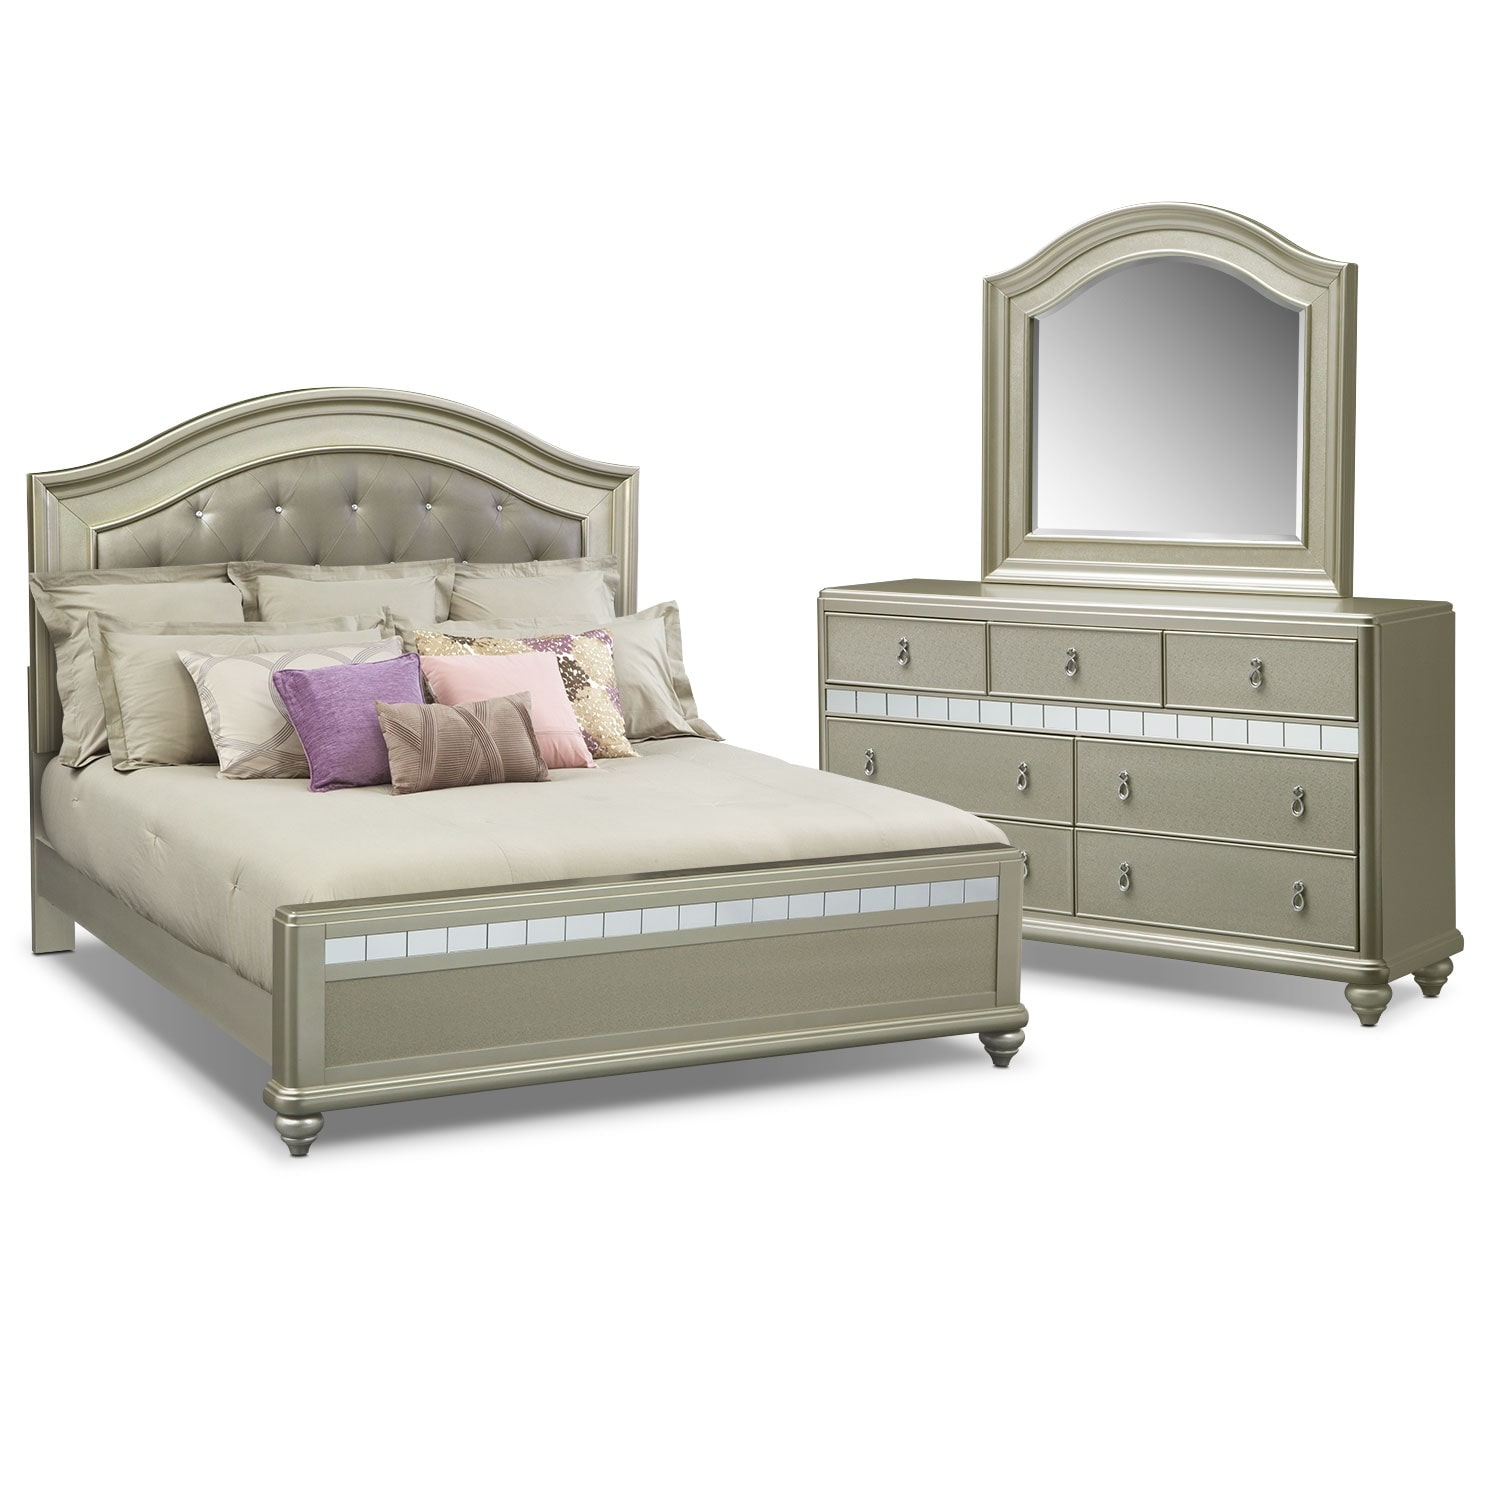 Serena King 5-Piece Bedroom Set - Platinum